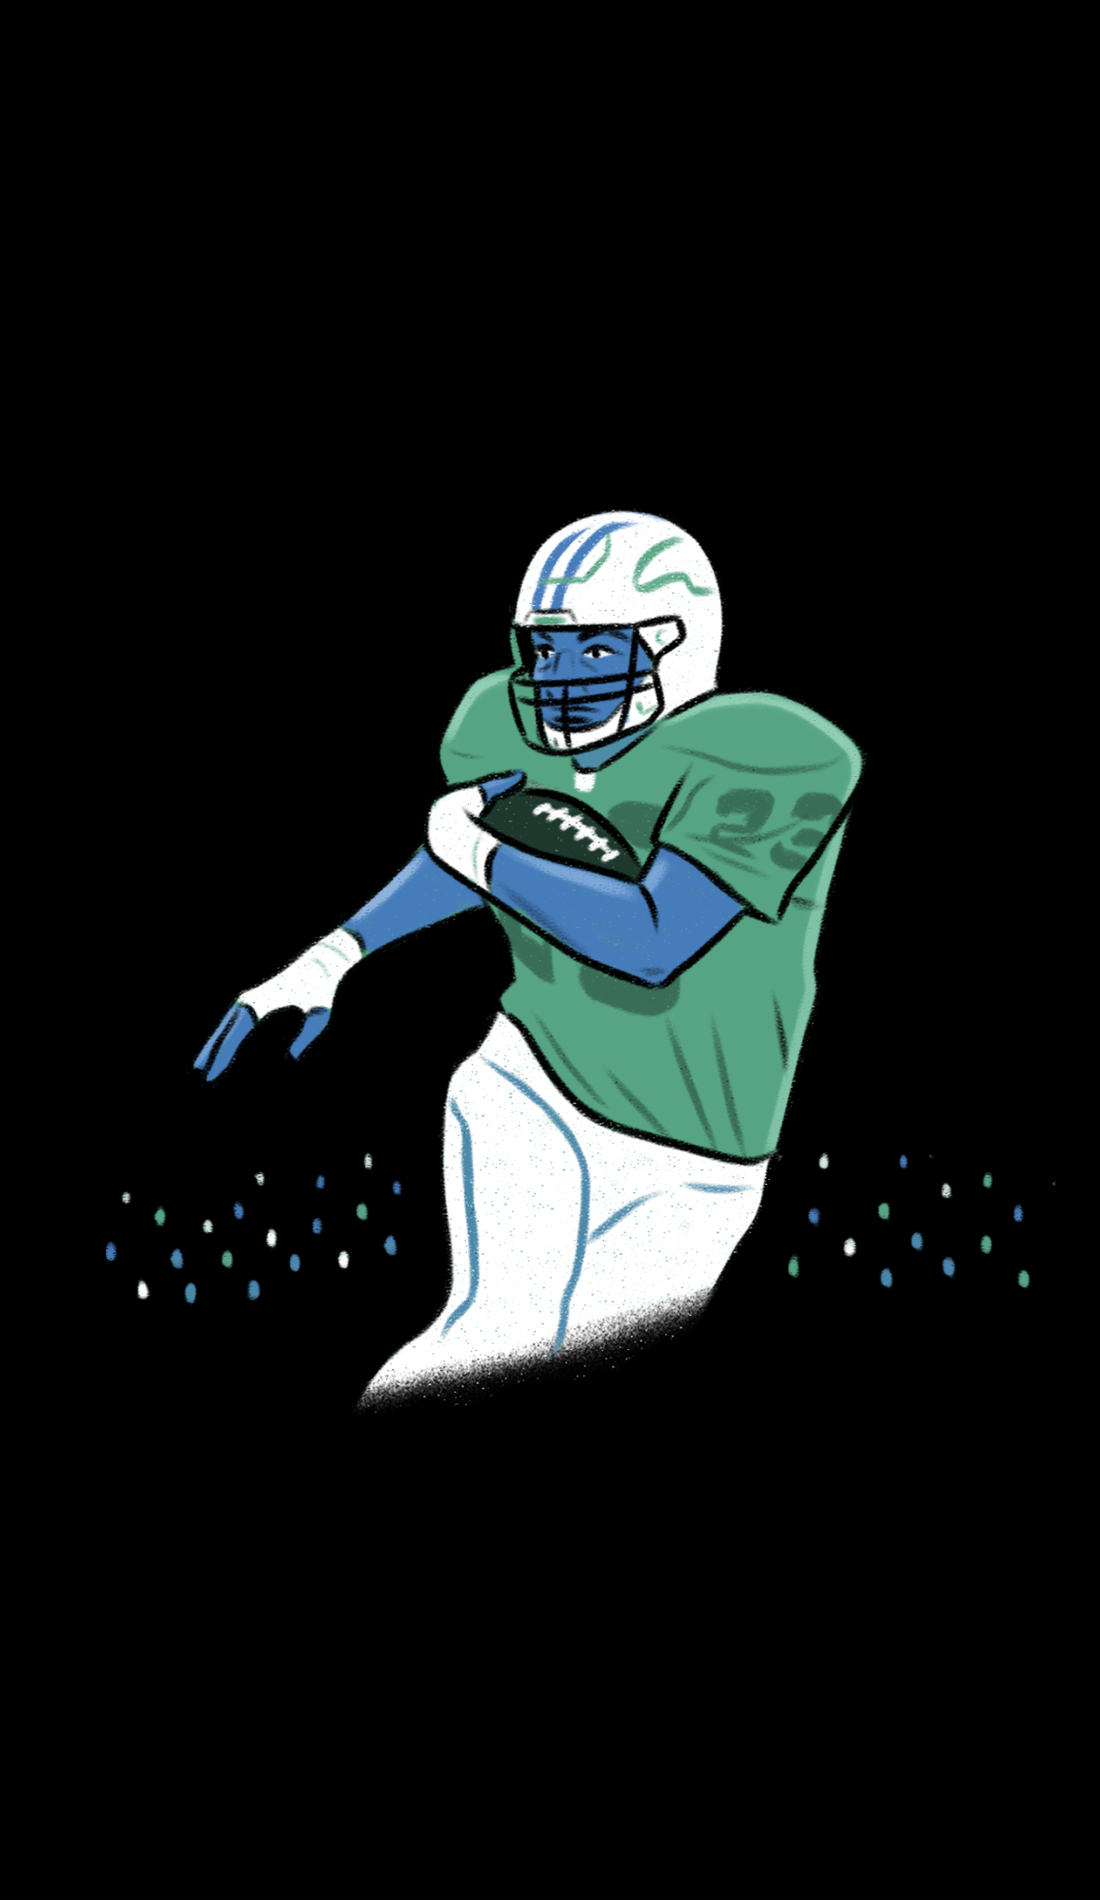 A San Jose State Spartans Football live event